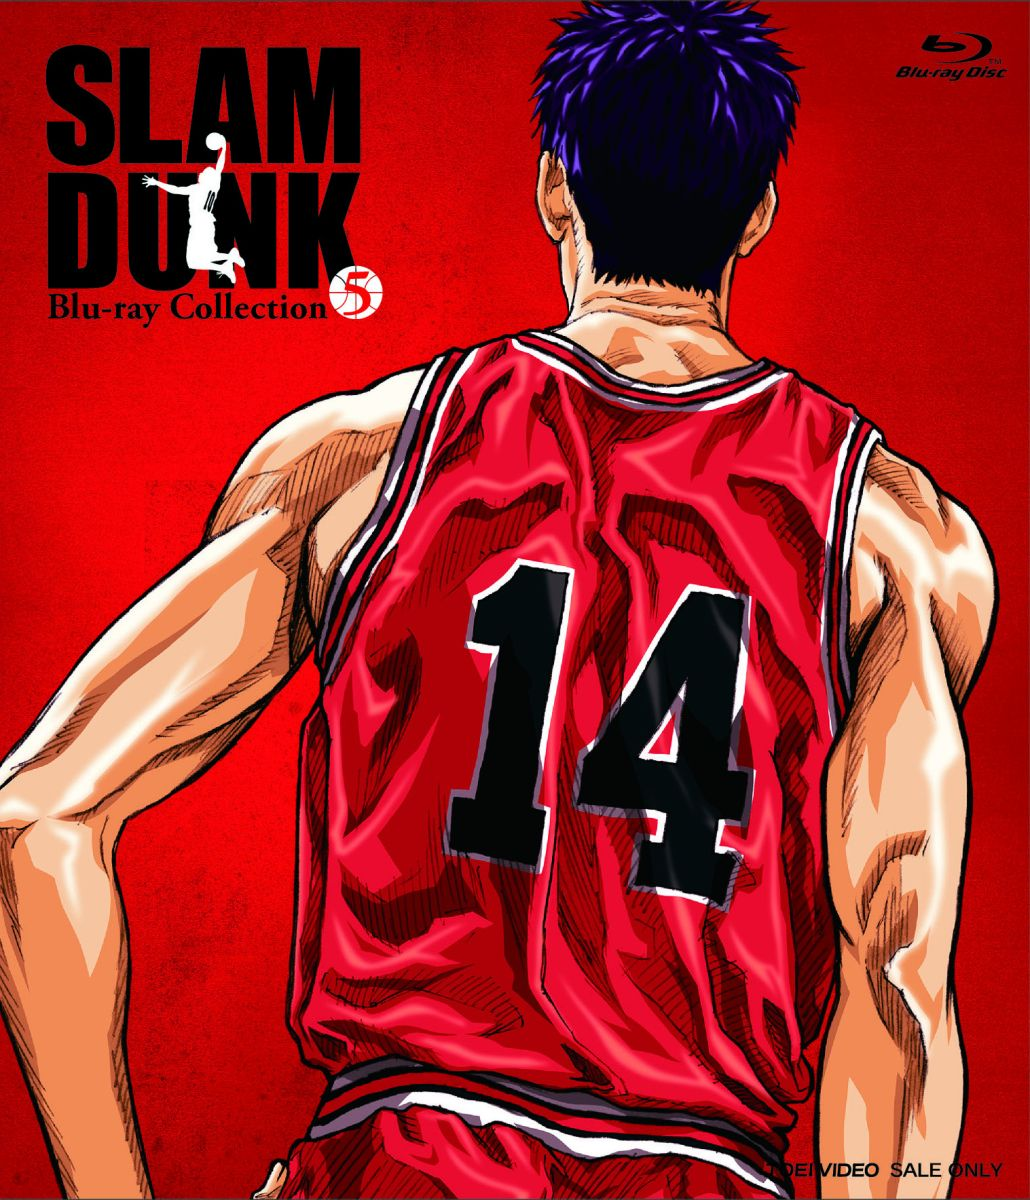 SLAM DUNK Blu-ray Collection 5【Blu-ray】画像